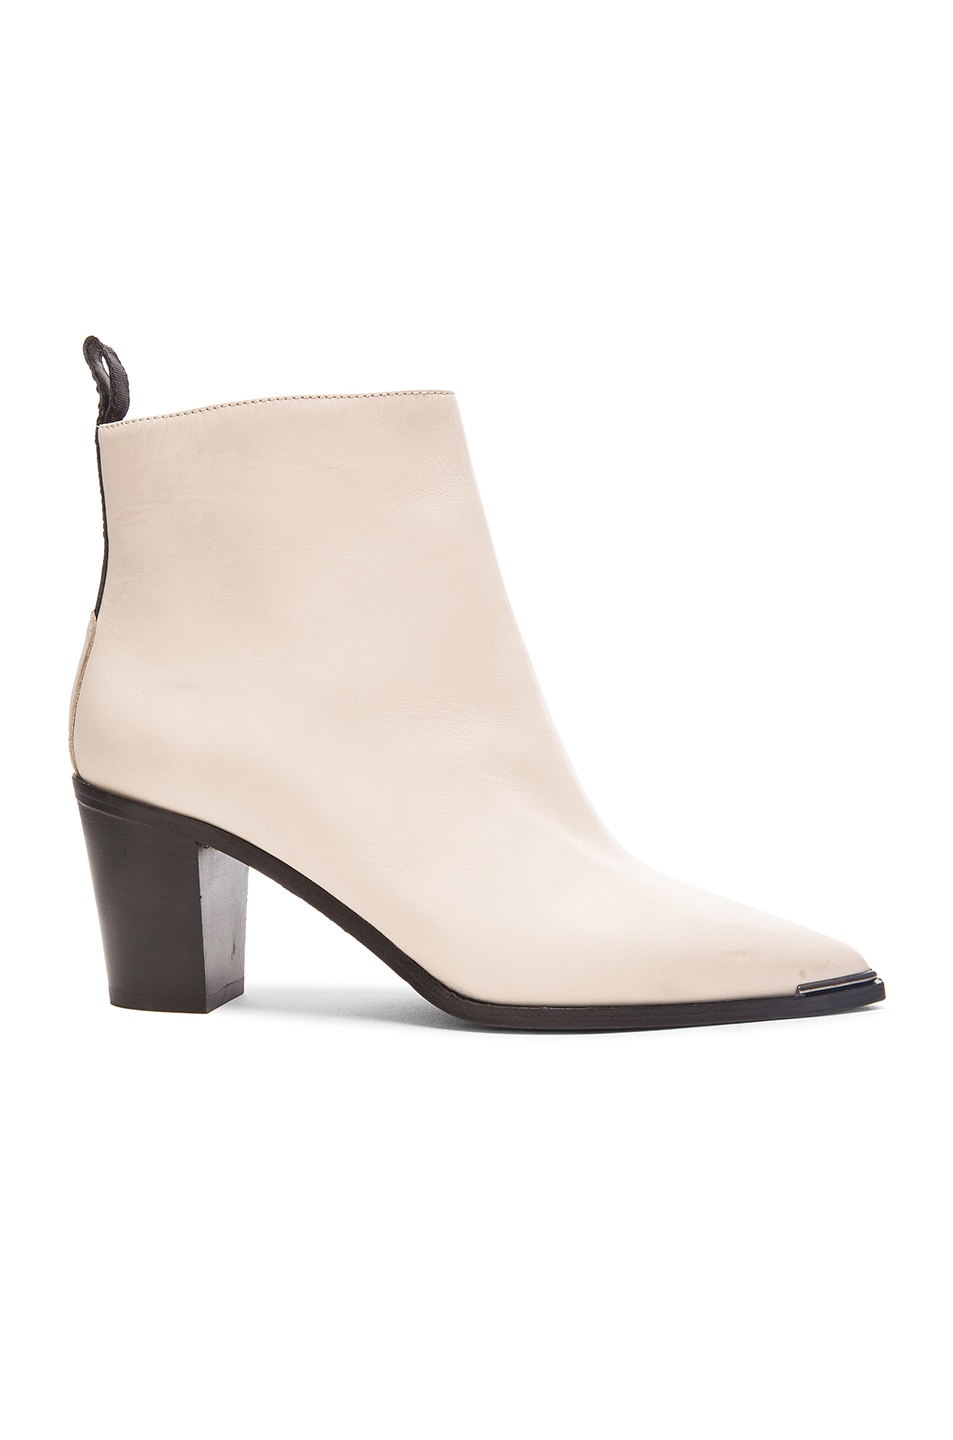 Image 1 of Acne Studios Loma Boots in Cream